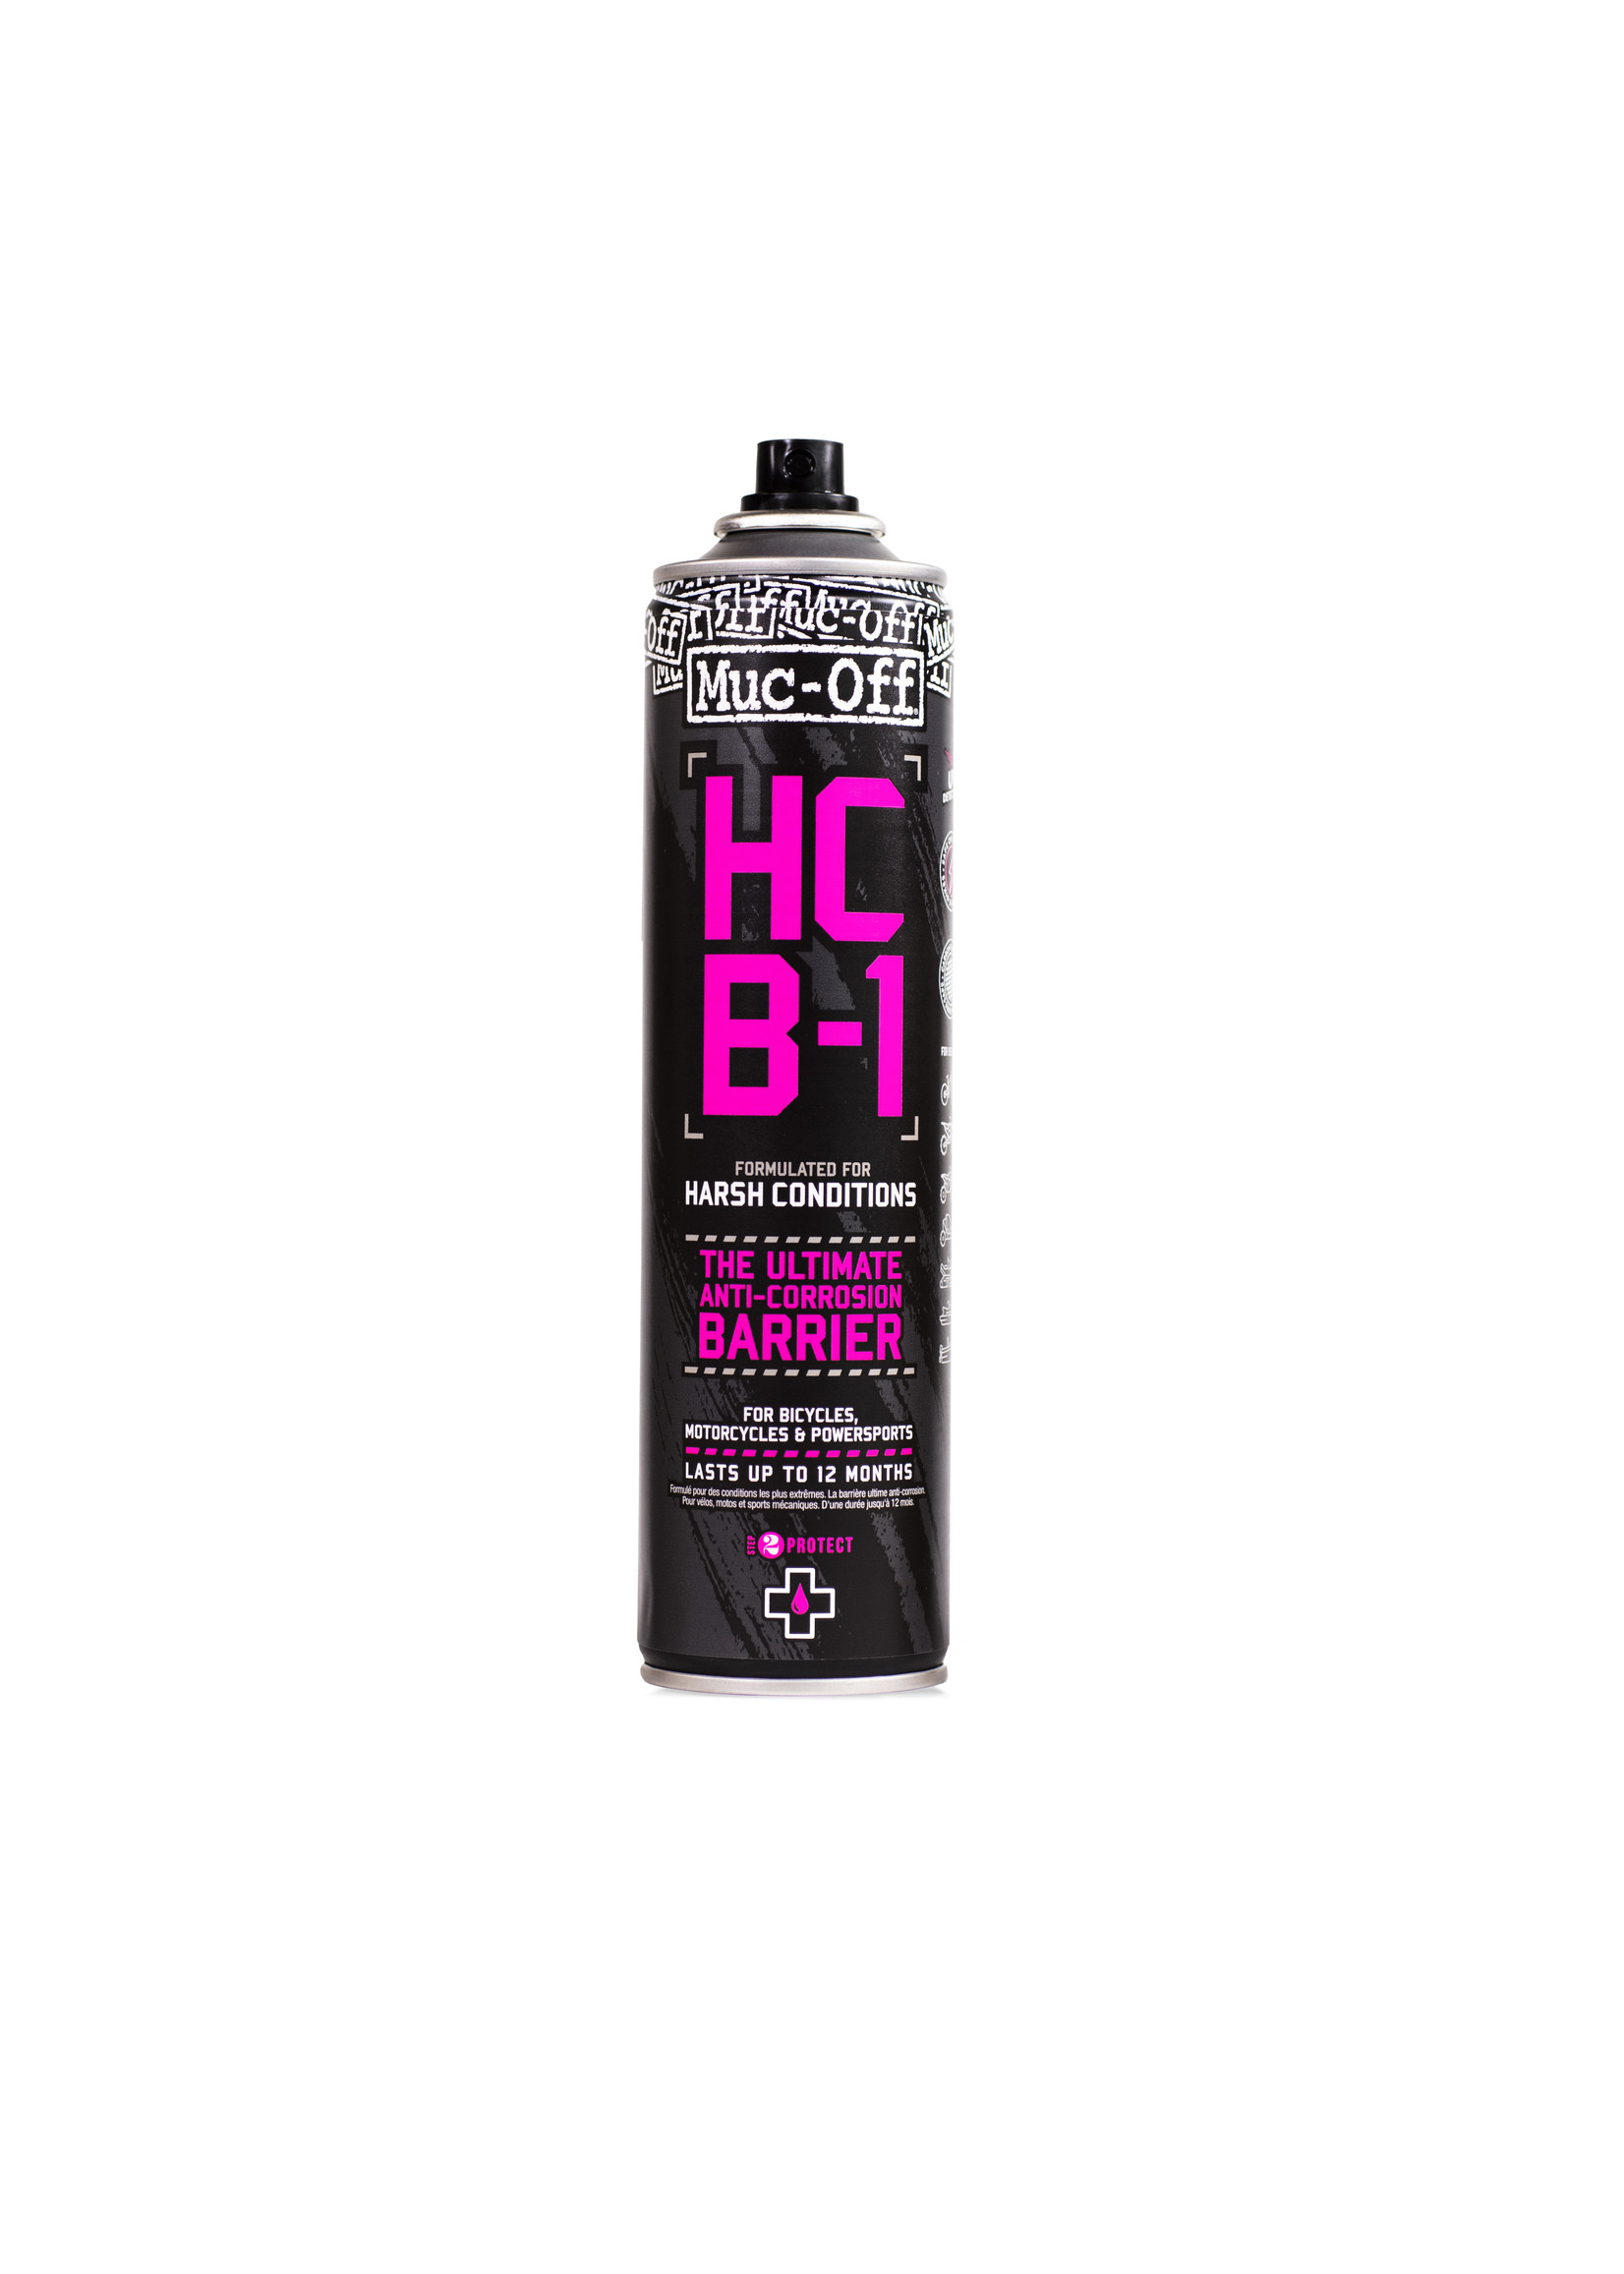 Muc-Off Harsh Condition Barrier 400ml